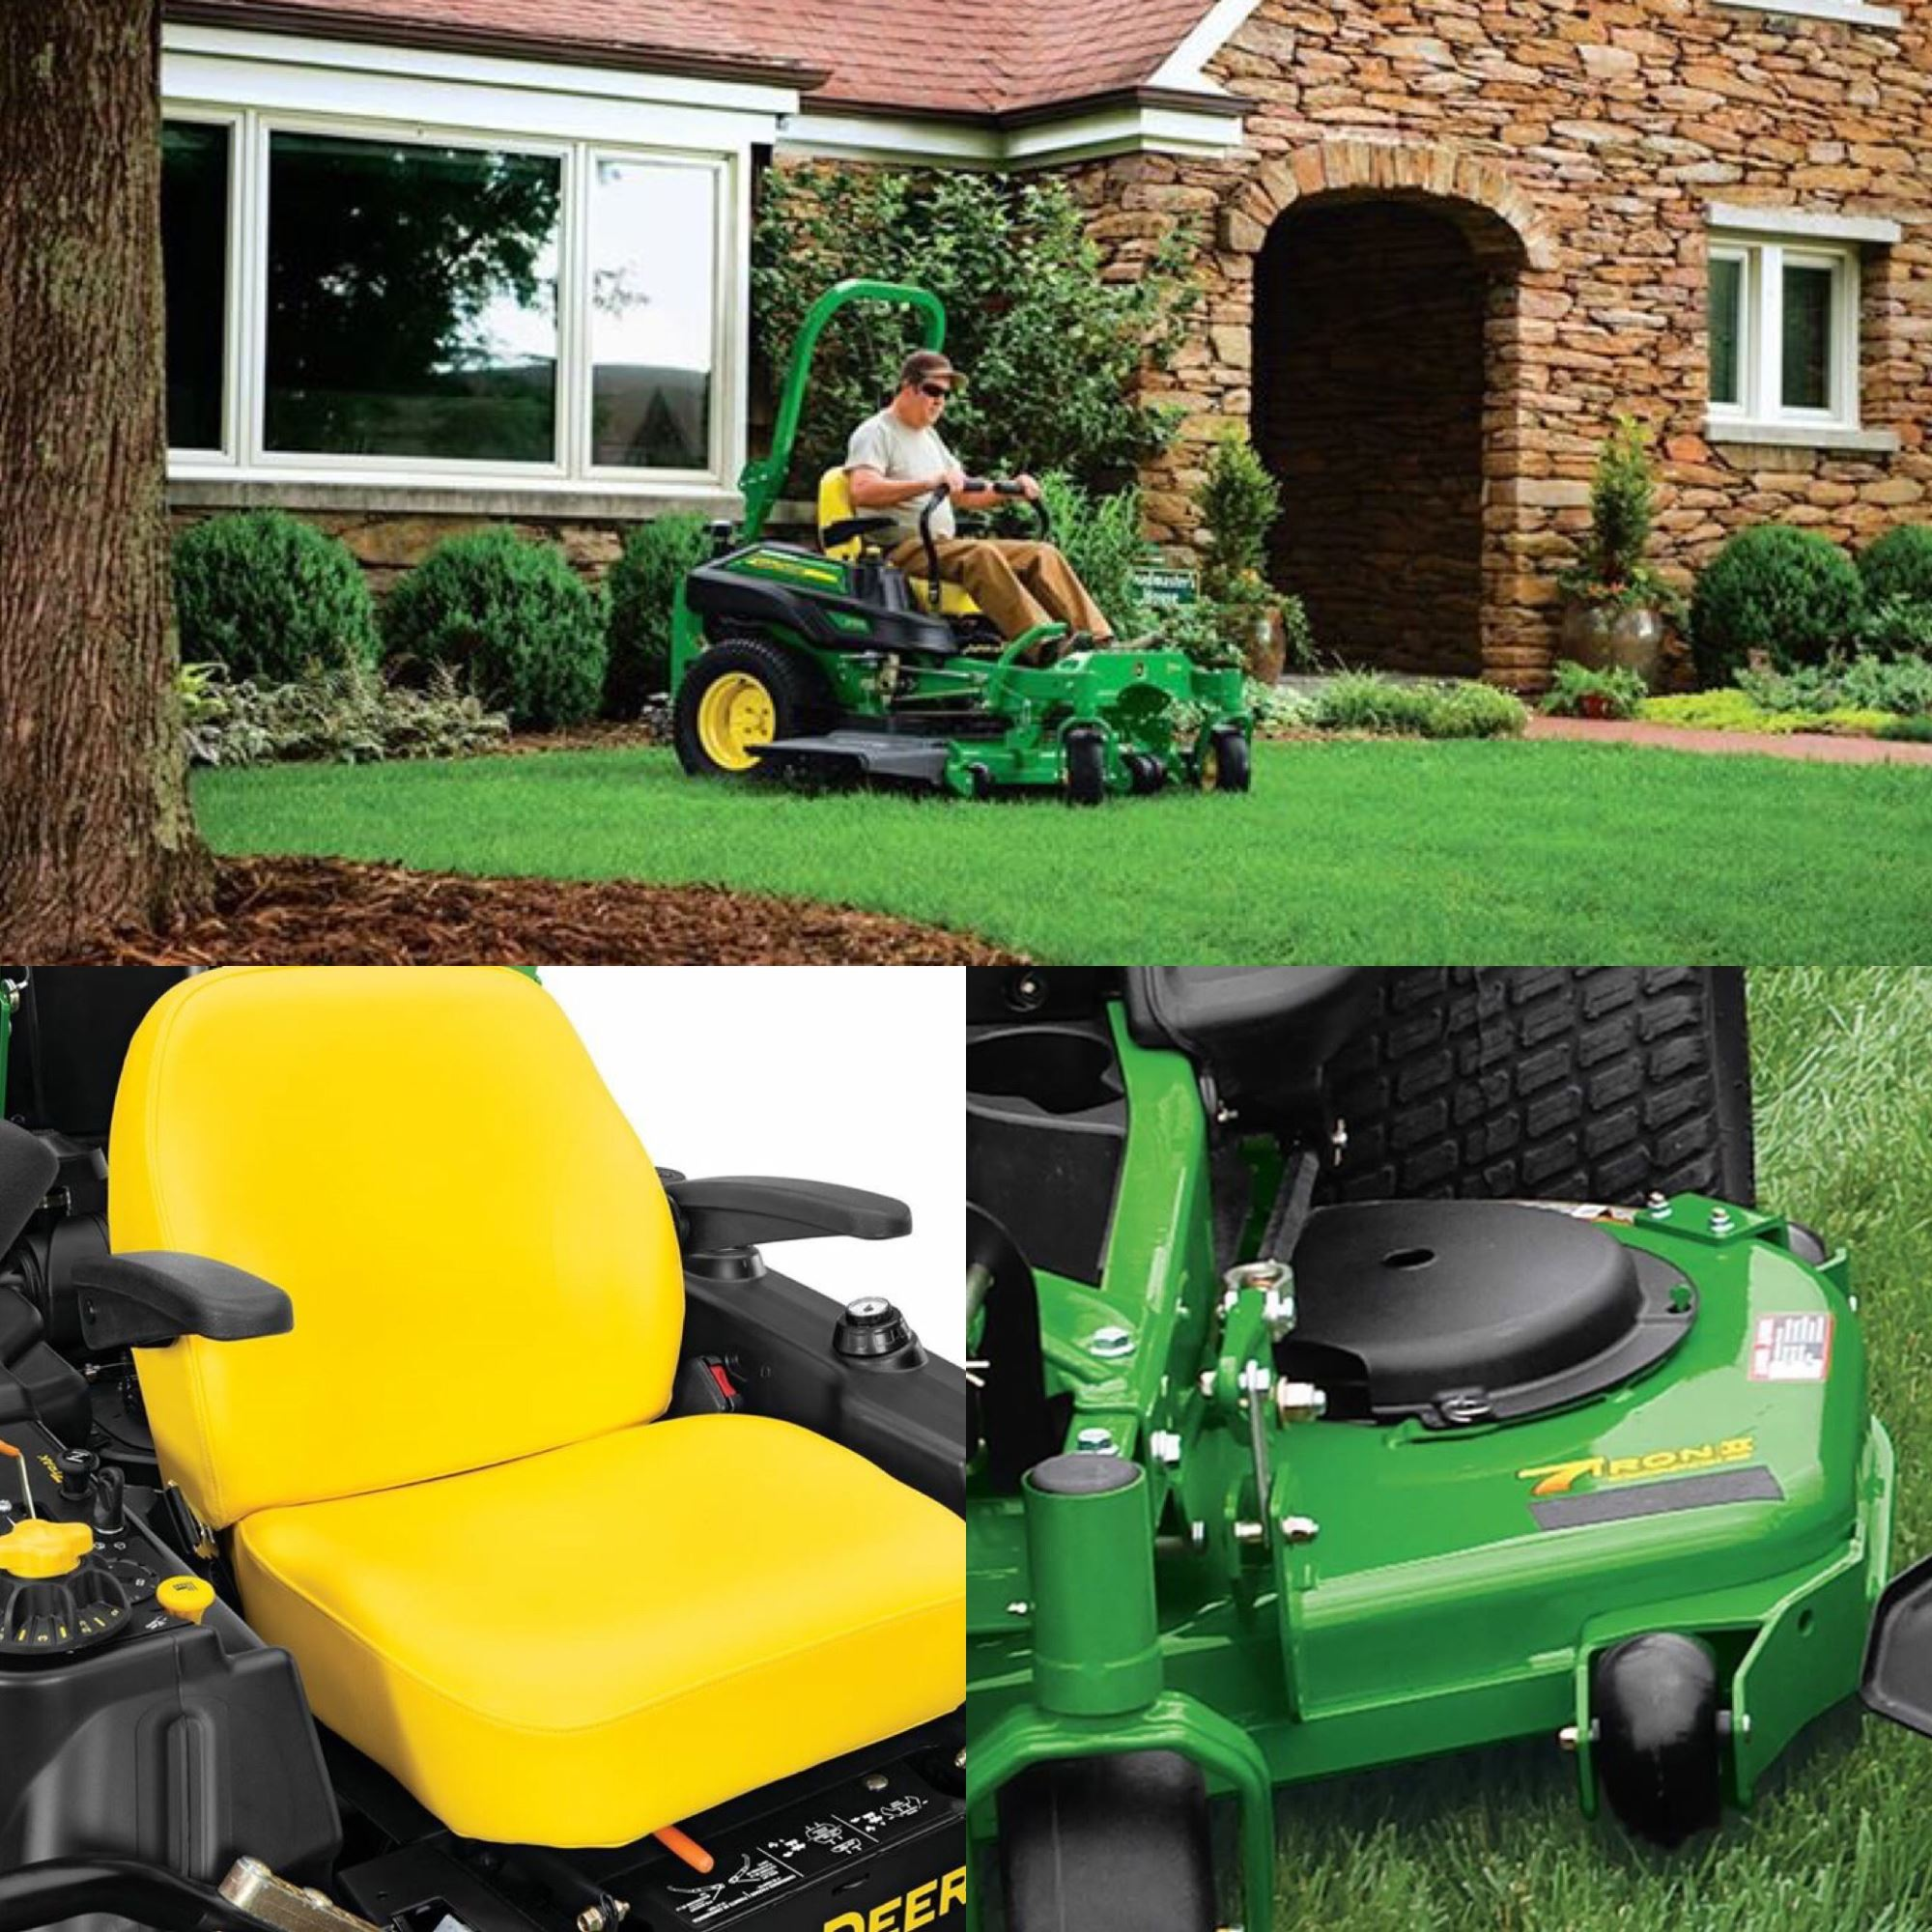 Must Watch Video! The John Deere ZTrak 900 Series Zero-Turn Mowers!